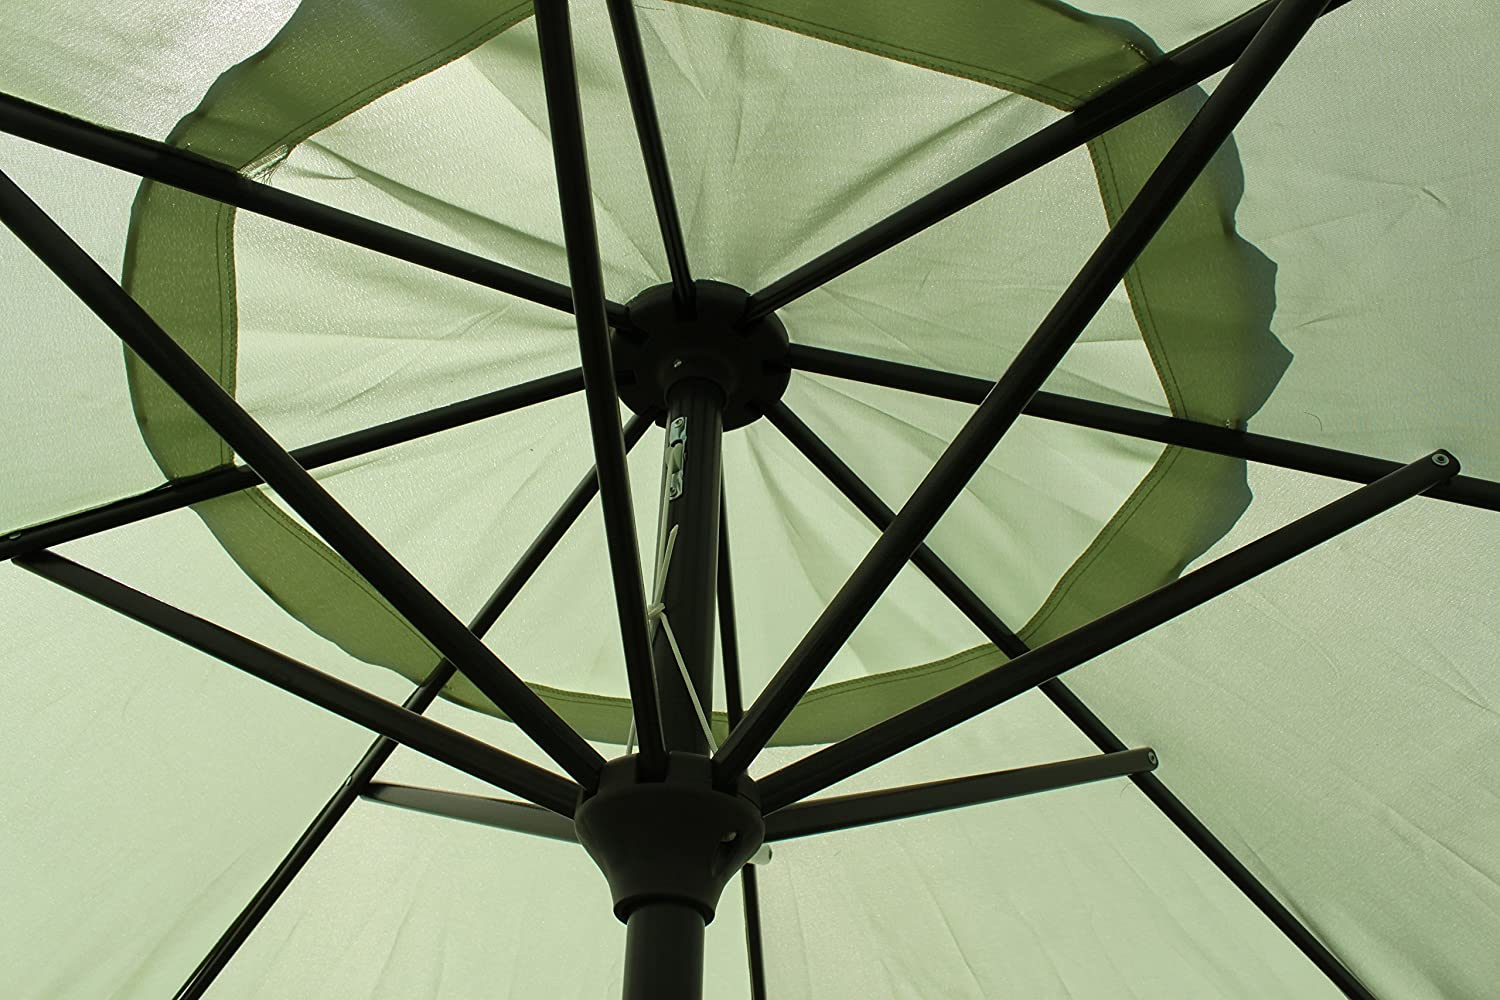 9 Market Patio Umbrella with Tilt and Crank – Light Lime Green